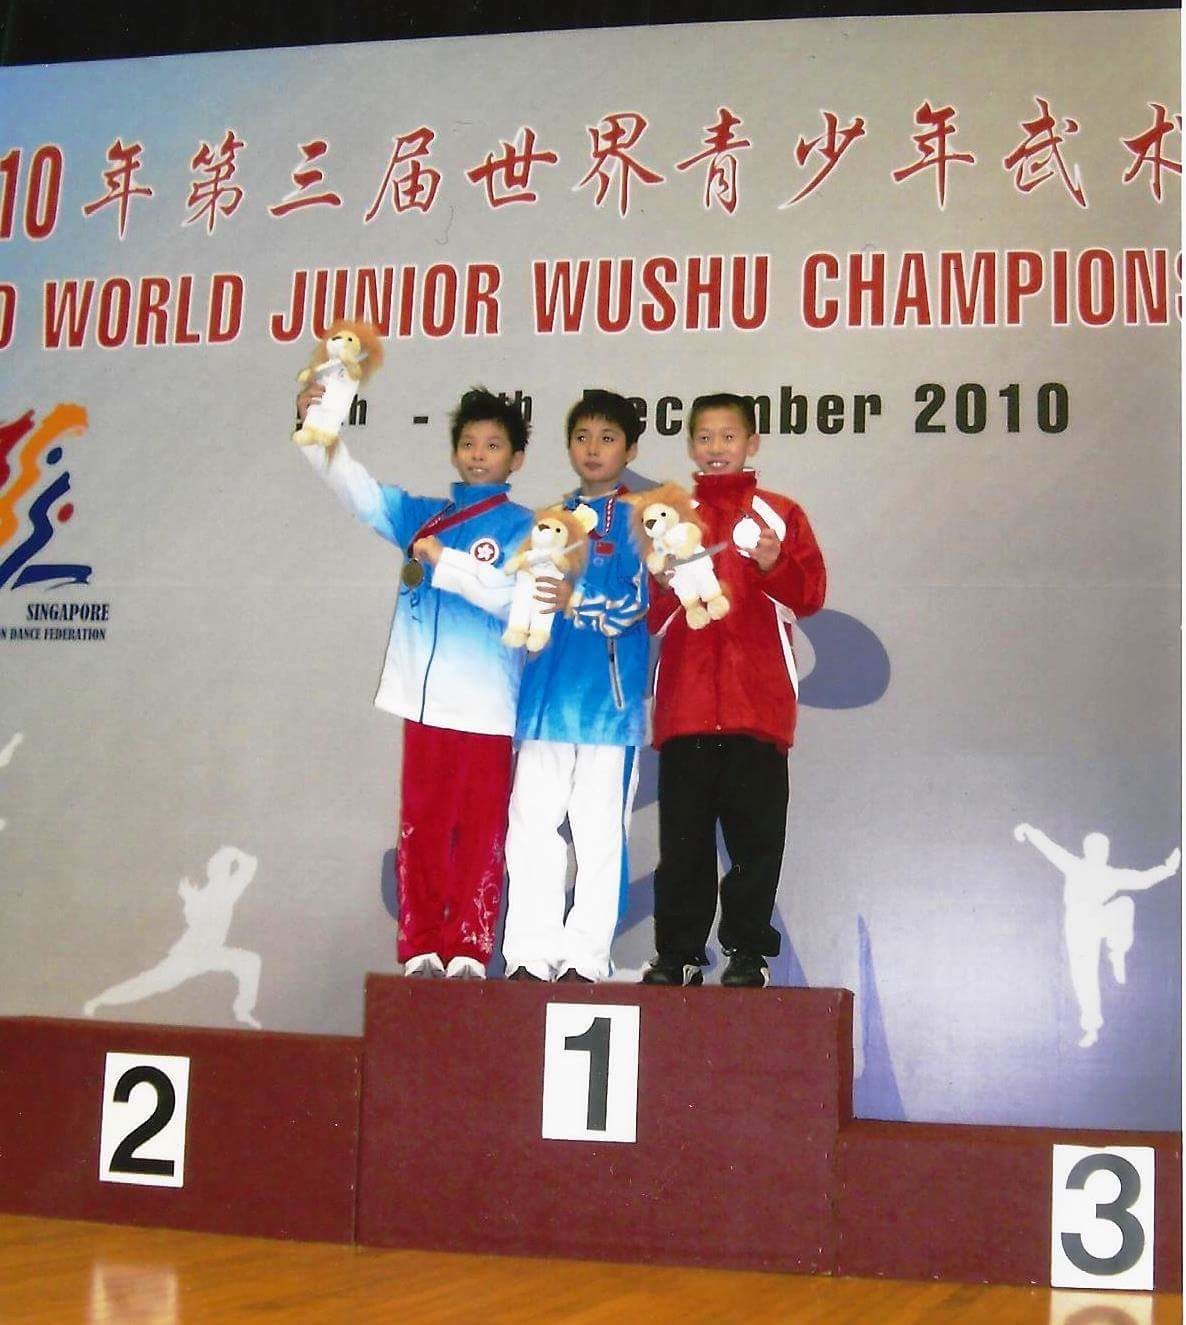 Nan-Rong on the podium